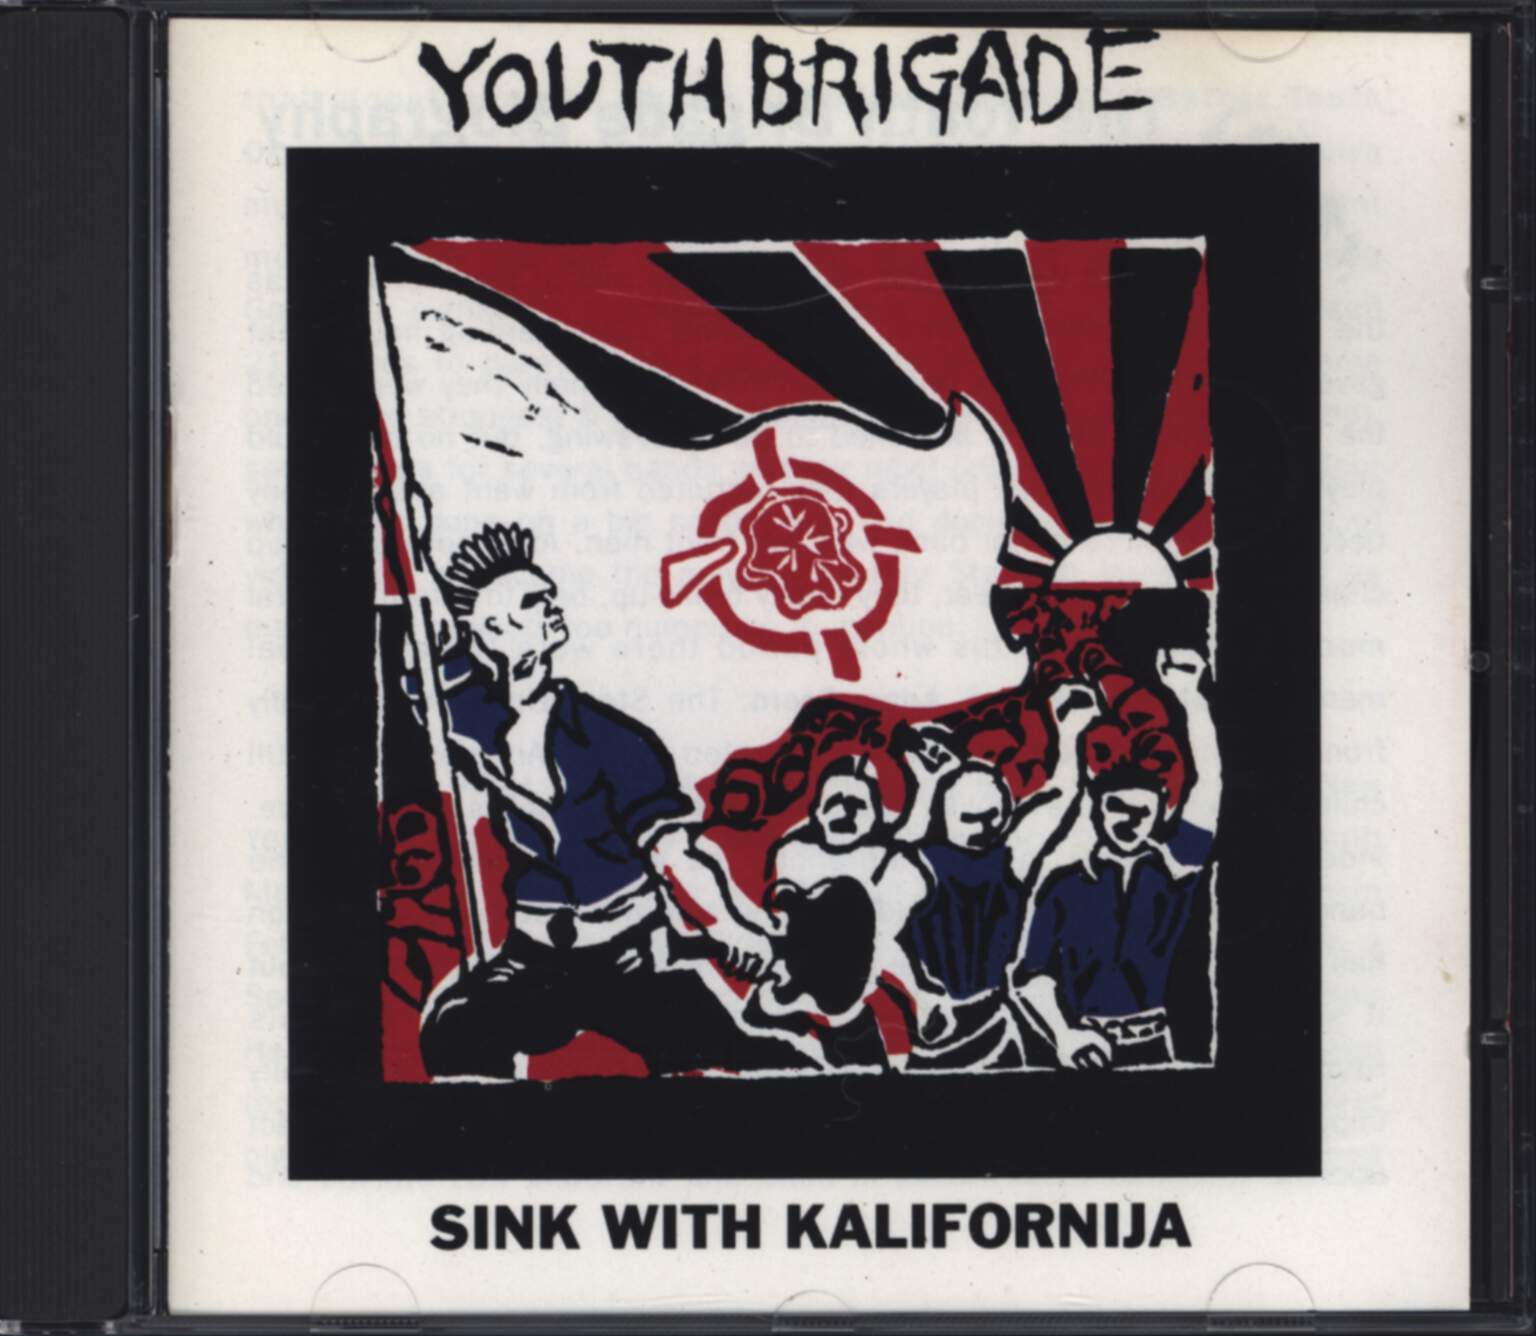 Youth Brigade: Sink With Kalifornija, CD